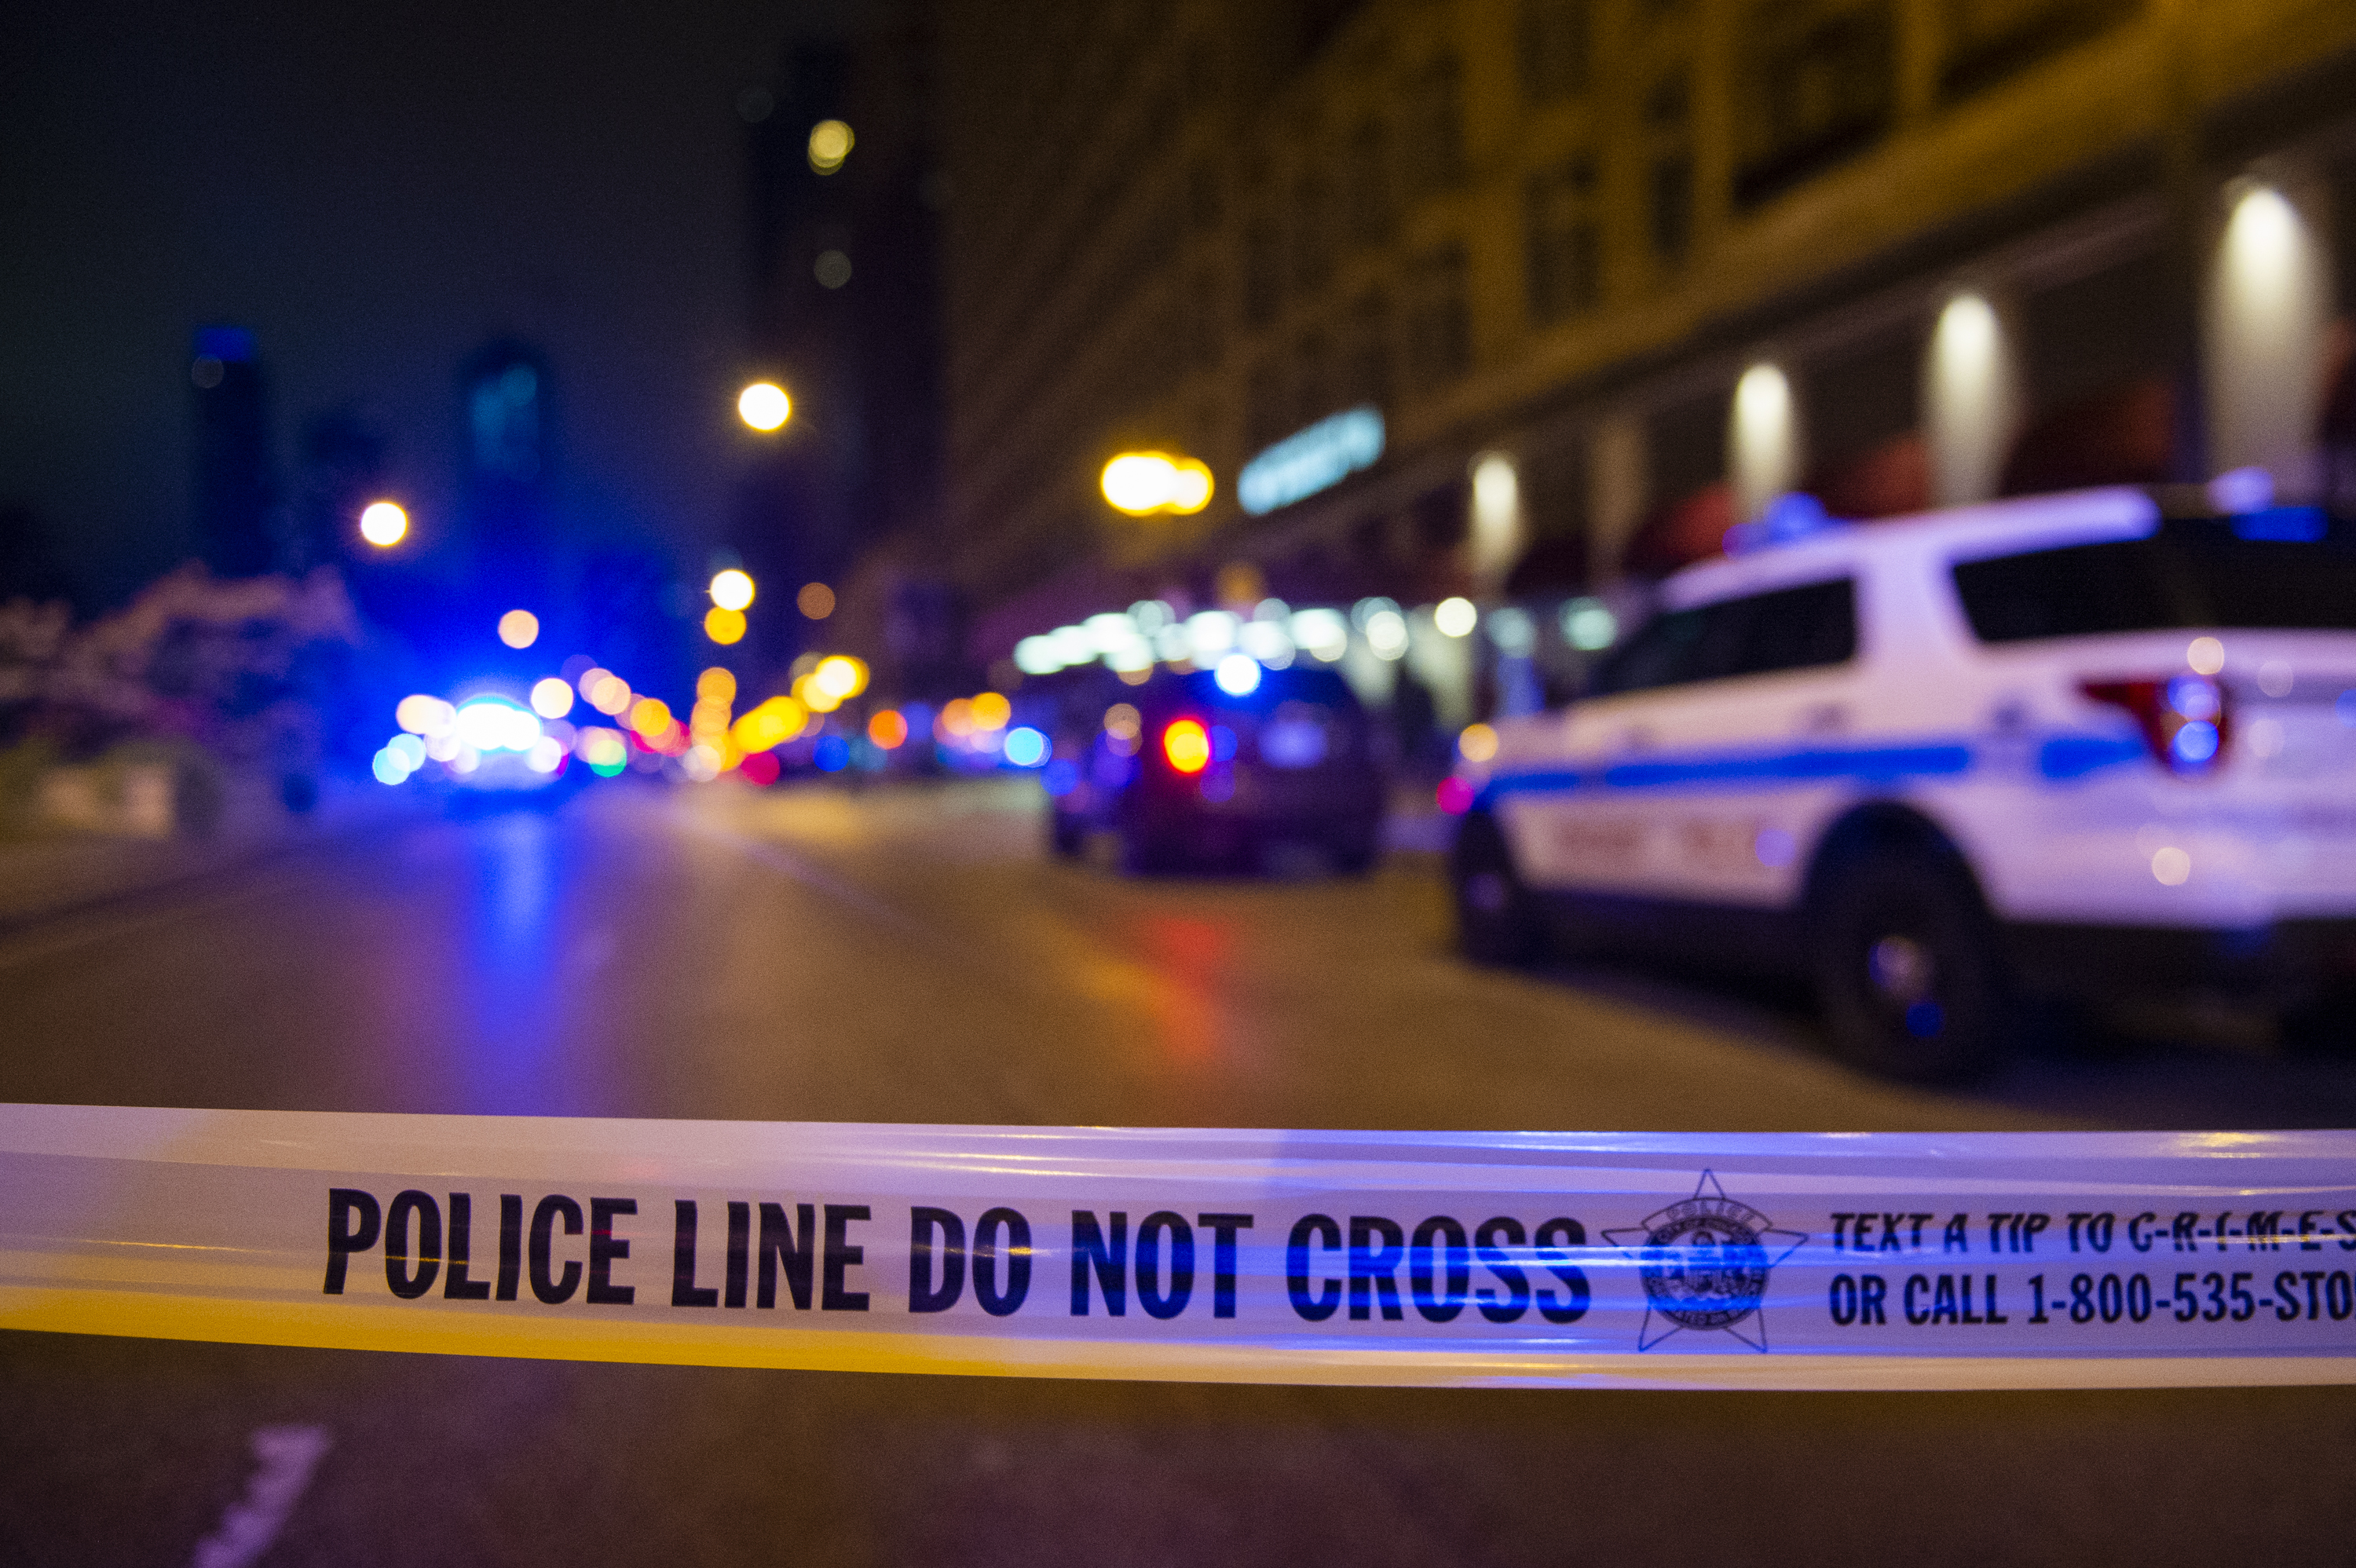 Police are warning residents about a series of armed robberies since Nov. 9, 2019, in West Town and on the Near West Side.